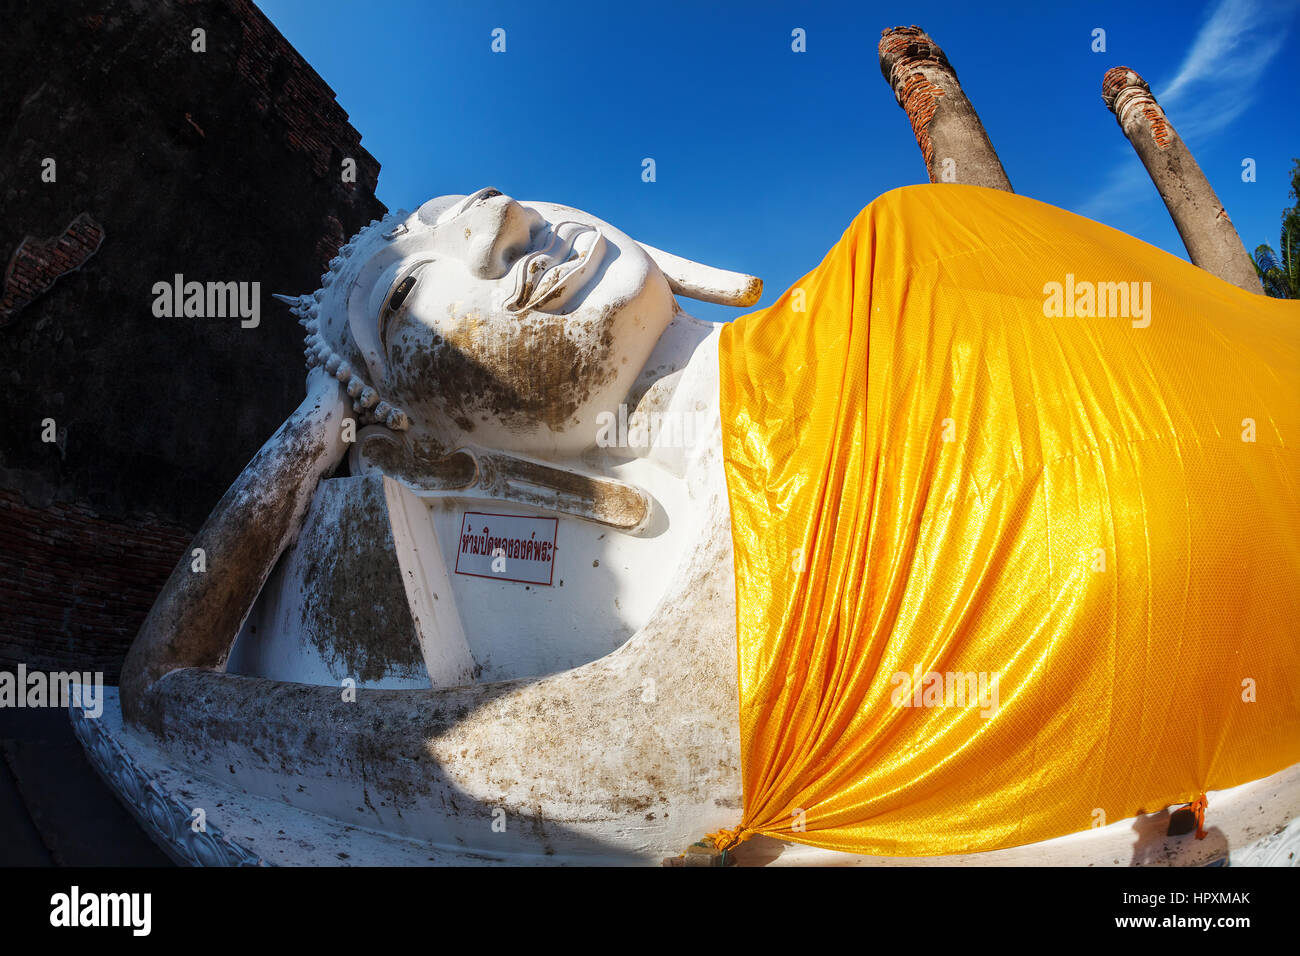 Big Lying Buddha statue with yellow robe in Wat Yai Chai Mongkol monastery in Ayuttaya, Thailand - Stock Image